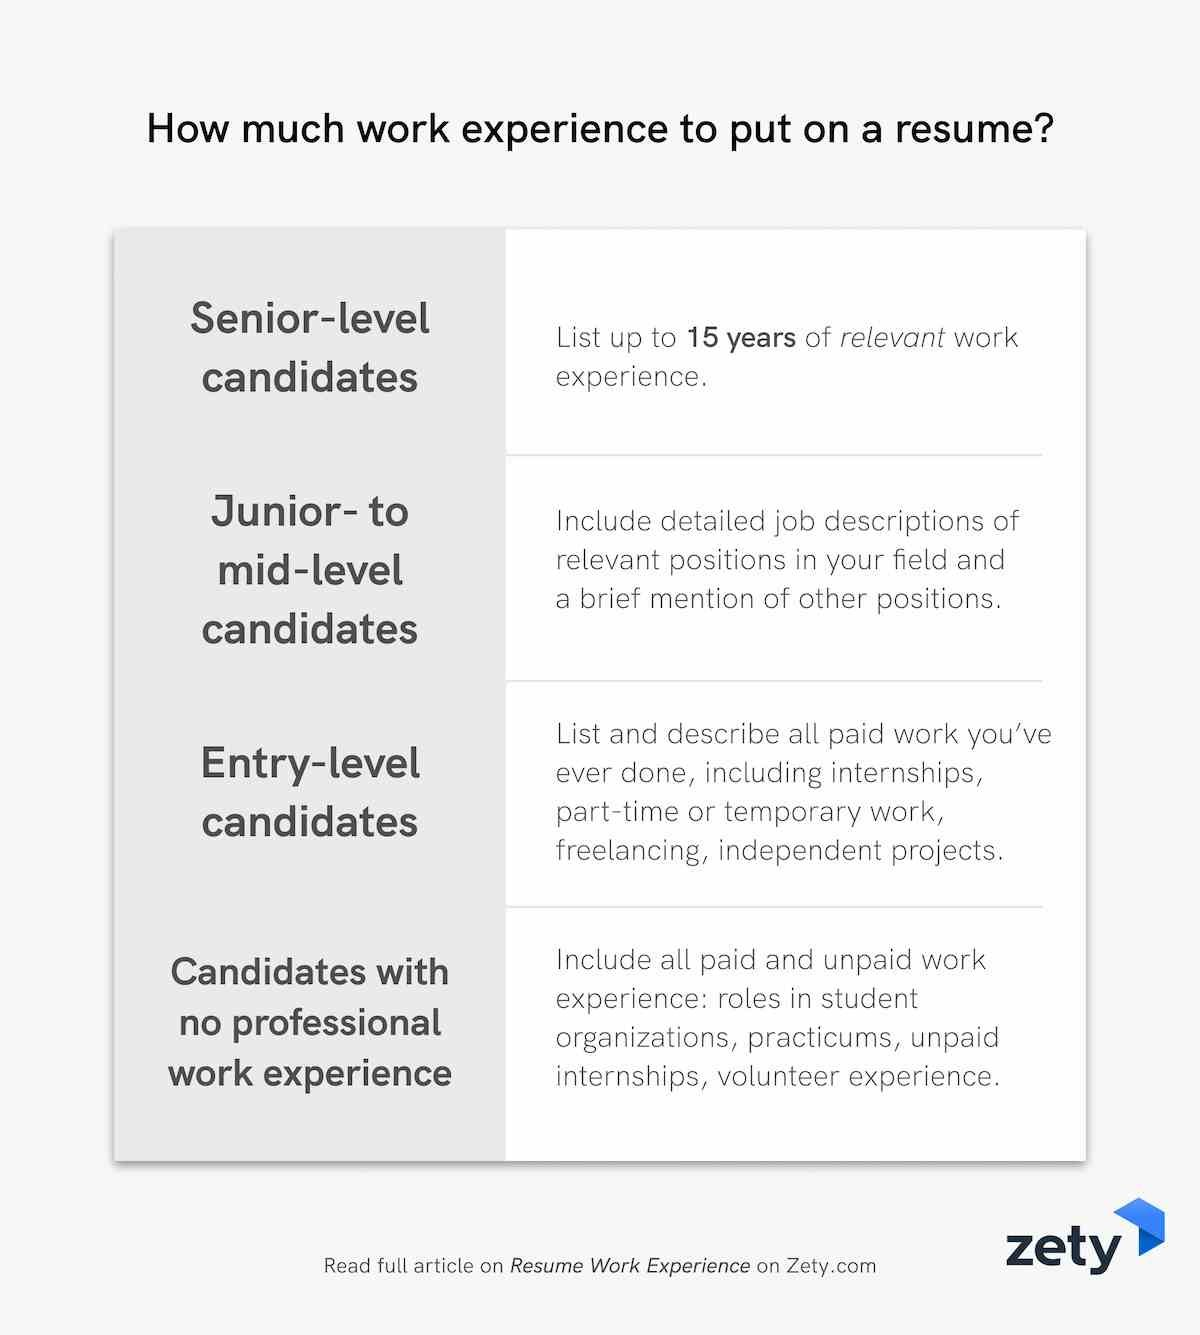 resume work experience history job description examples with much to put on for Resume Resume With Long Work History